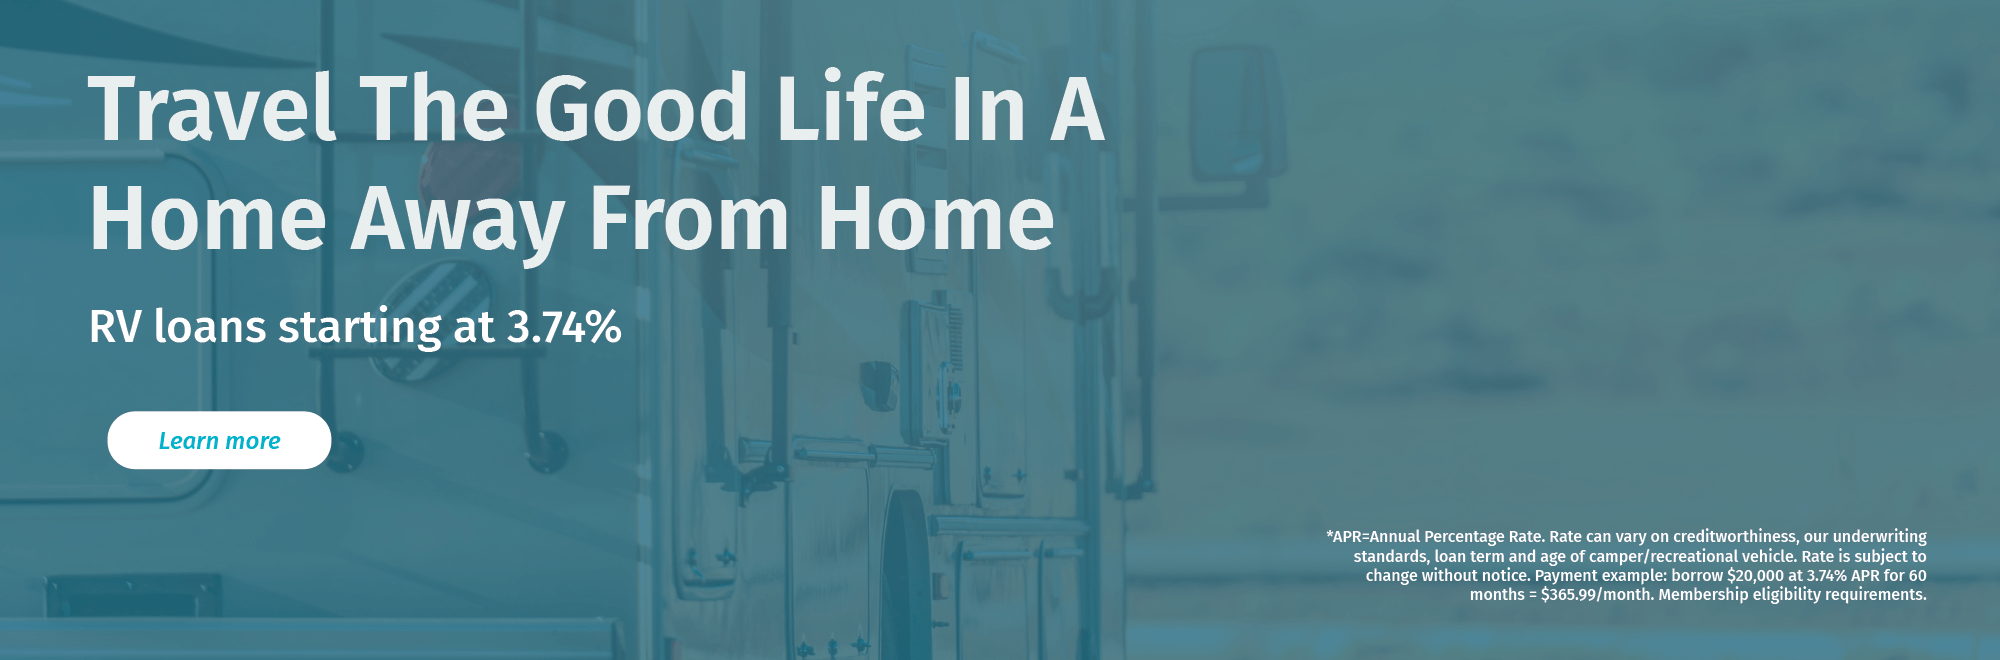 Travel the good life in a home away from home. Get pre-approved for an RV Loan today.